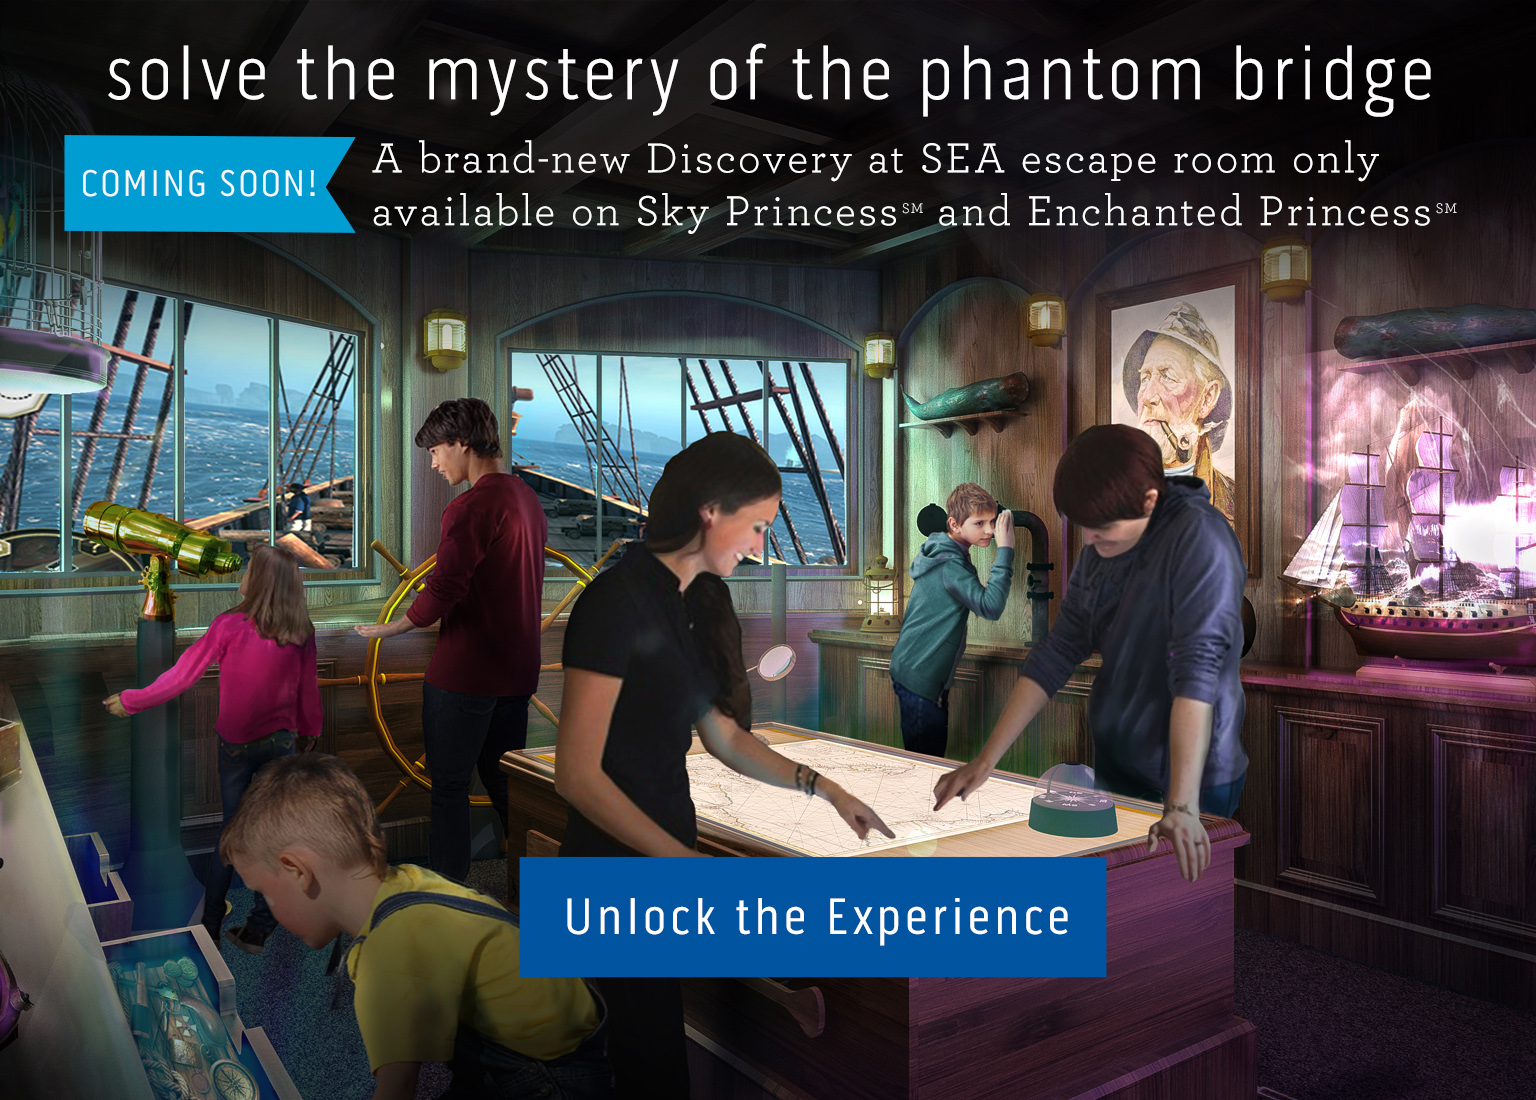 The first technologically-driven escape room at sea from Princess Cruises!